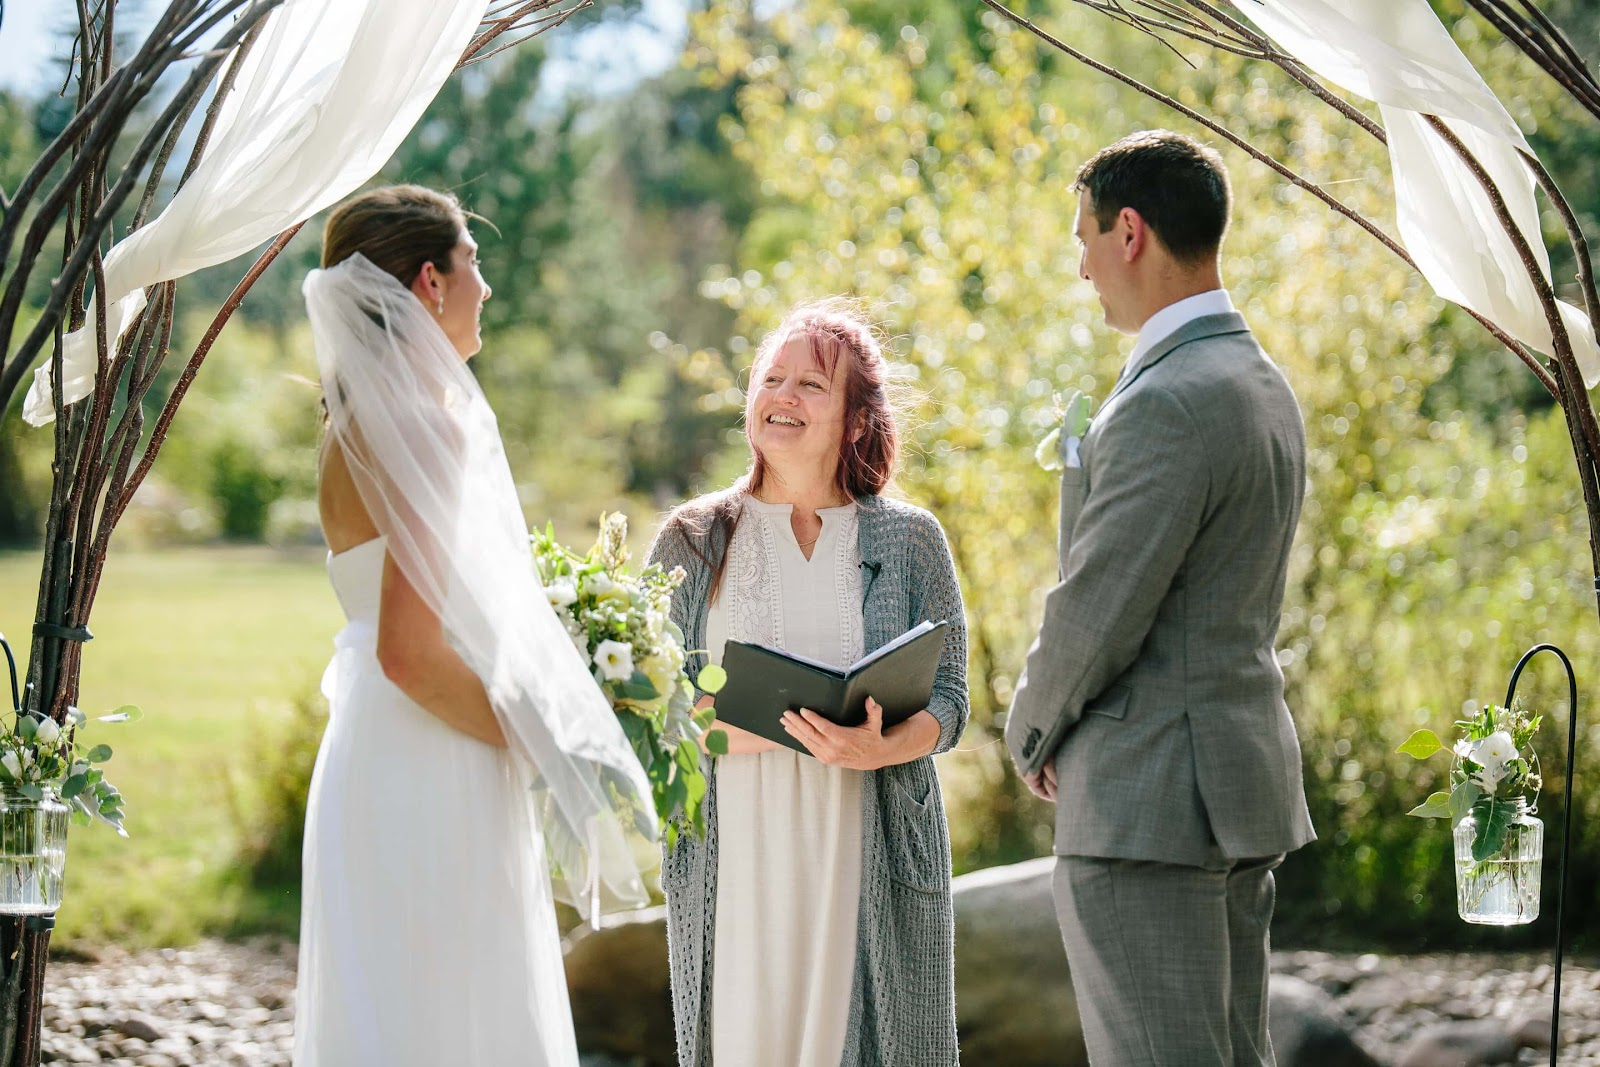 Intimate, Romantic, All Inclusive Elopements in Estes Park